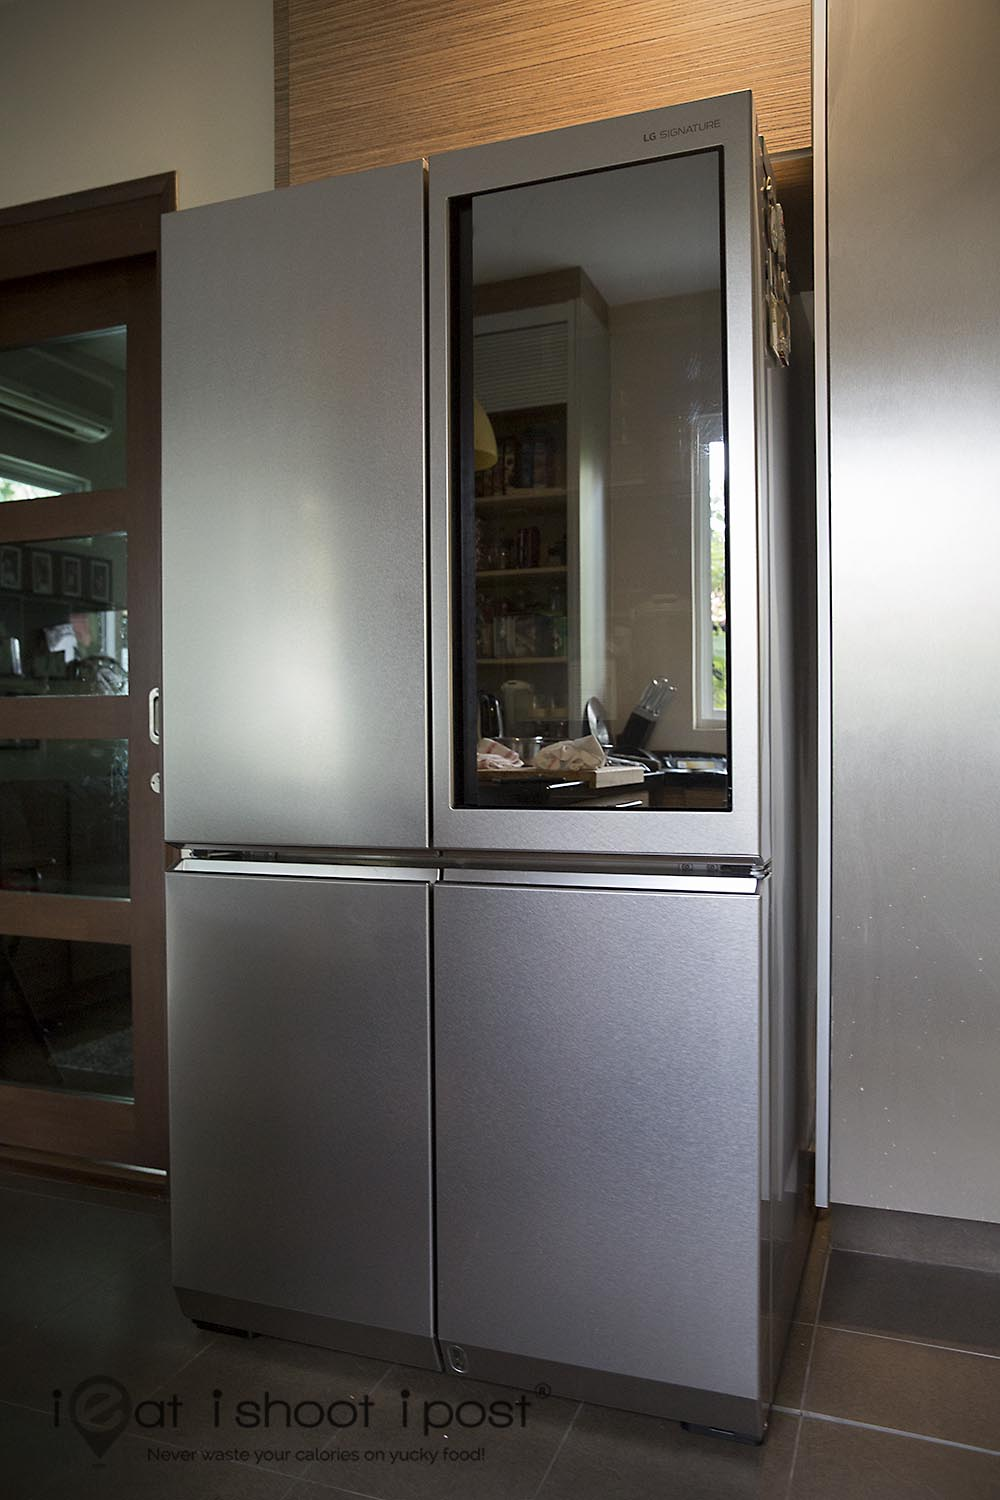 The Time Had Come To Retire My 15 Year Old Fridge And As Fate Would Have  It, I Got Acquainted With LG SIGNATUREu0027s Uber Slick Stainless Steel Fridge  At Their ...